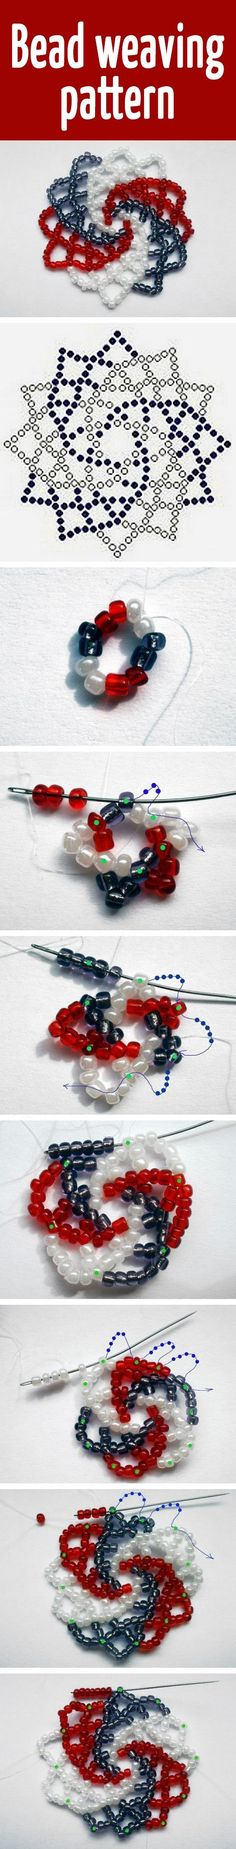 Seed bead jewelry Bead weaving pattern Discovred by : Linda Linebaugh